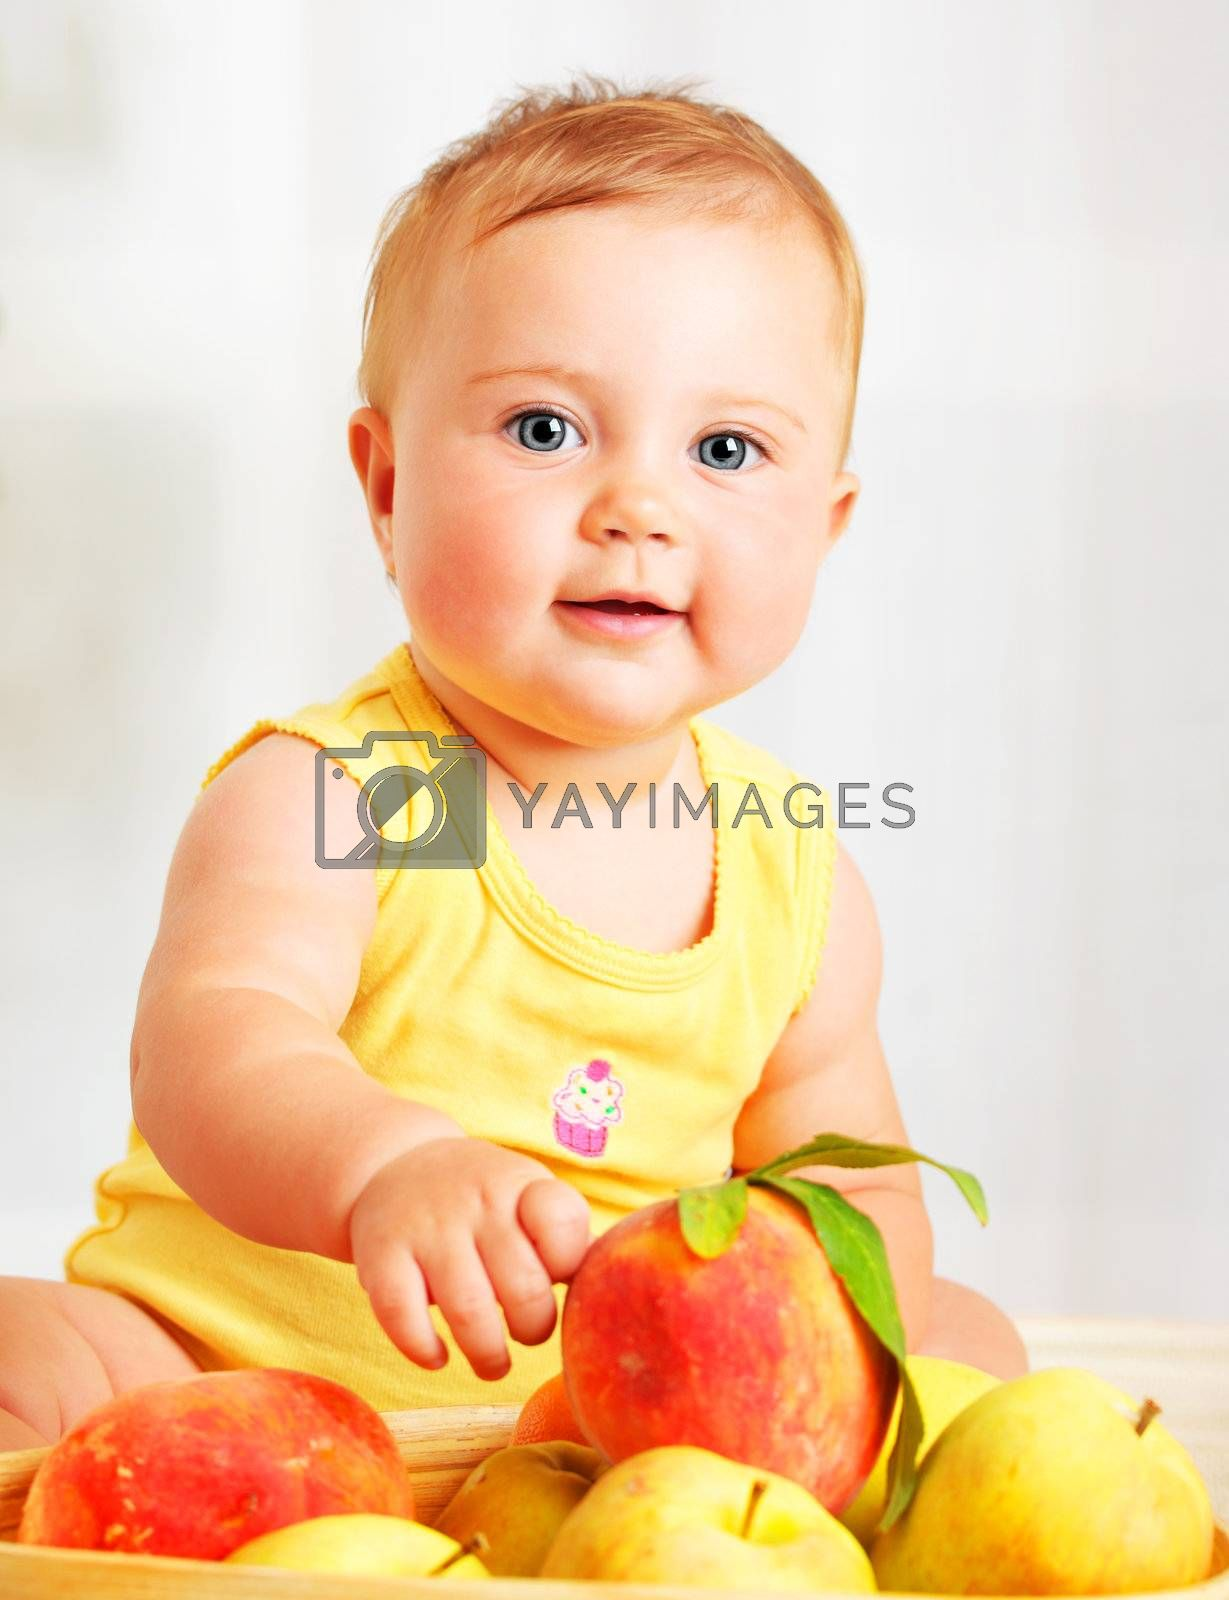 Little baby choosing fruits, closeup portrait, concept of health care & healthy child nutrition